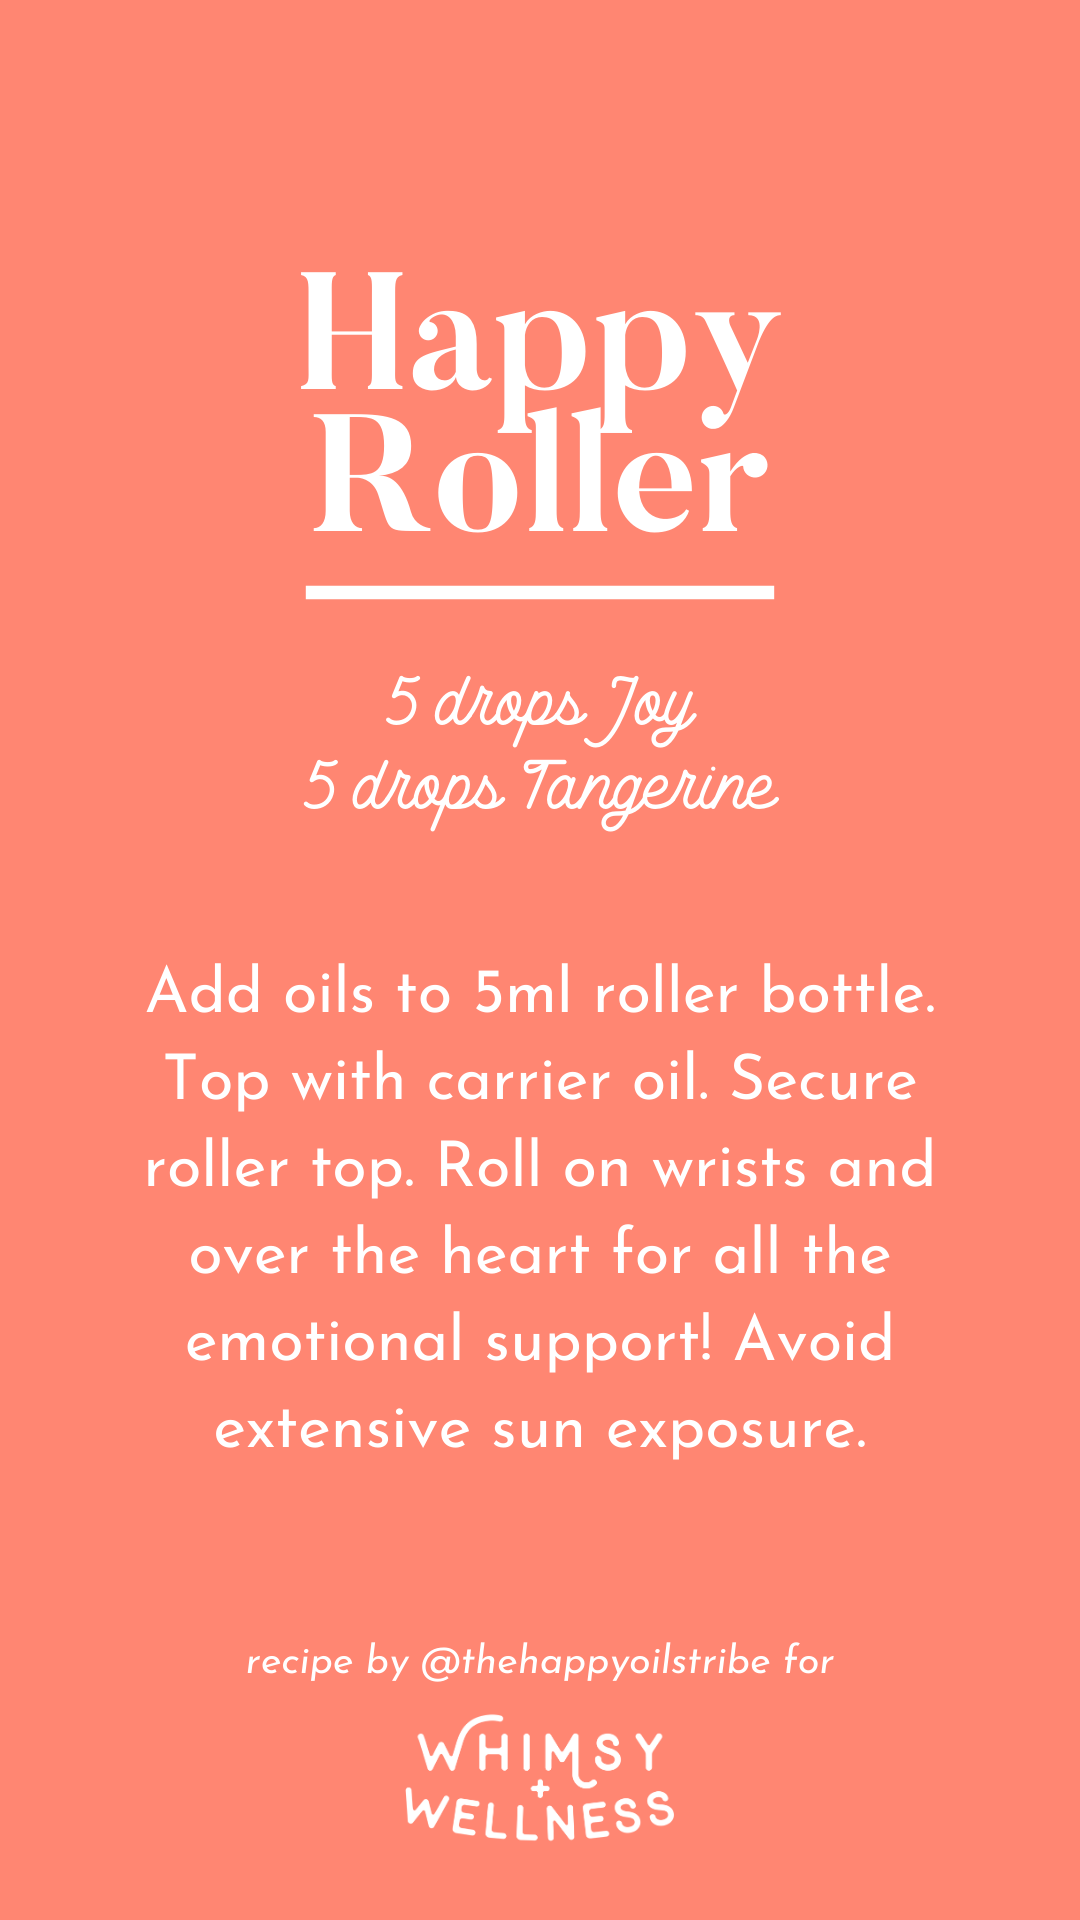 Happy roller using Young Living essential oils